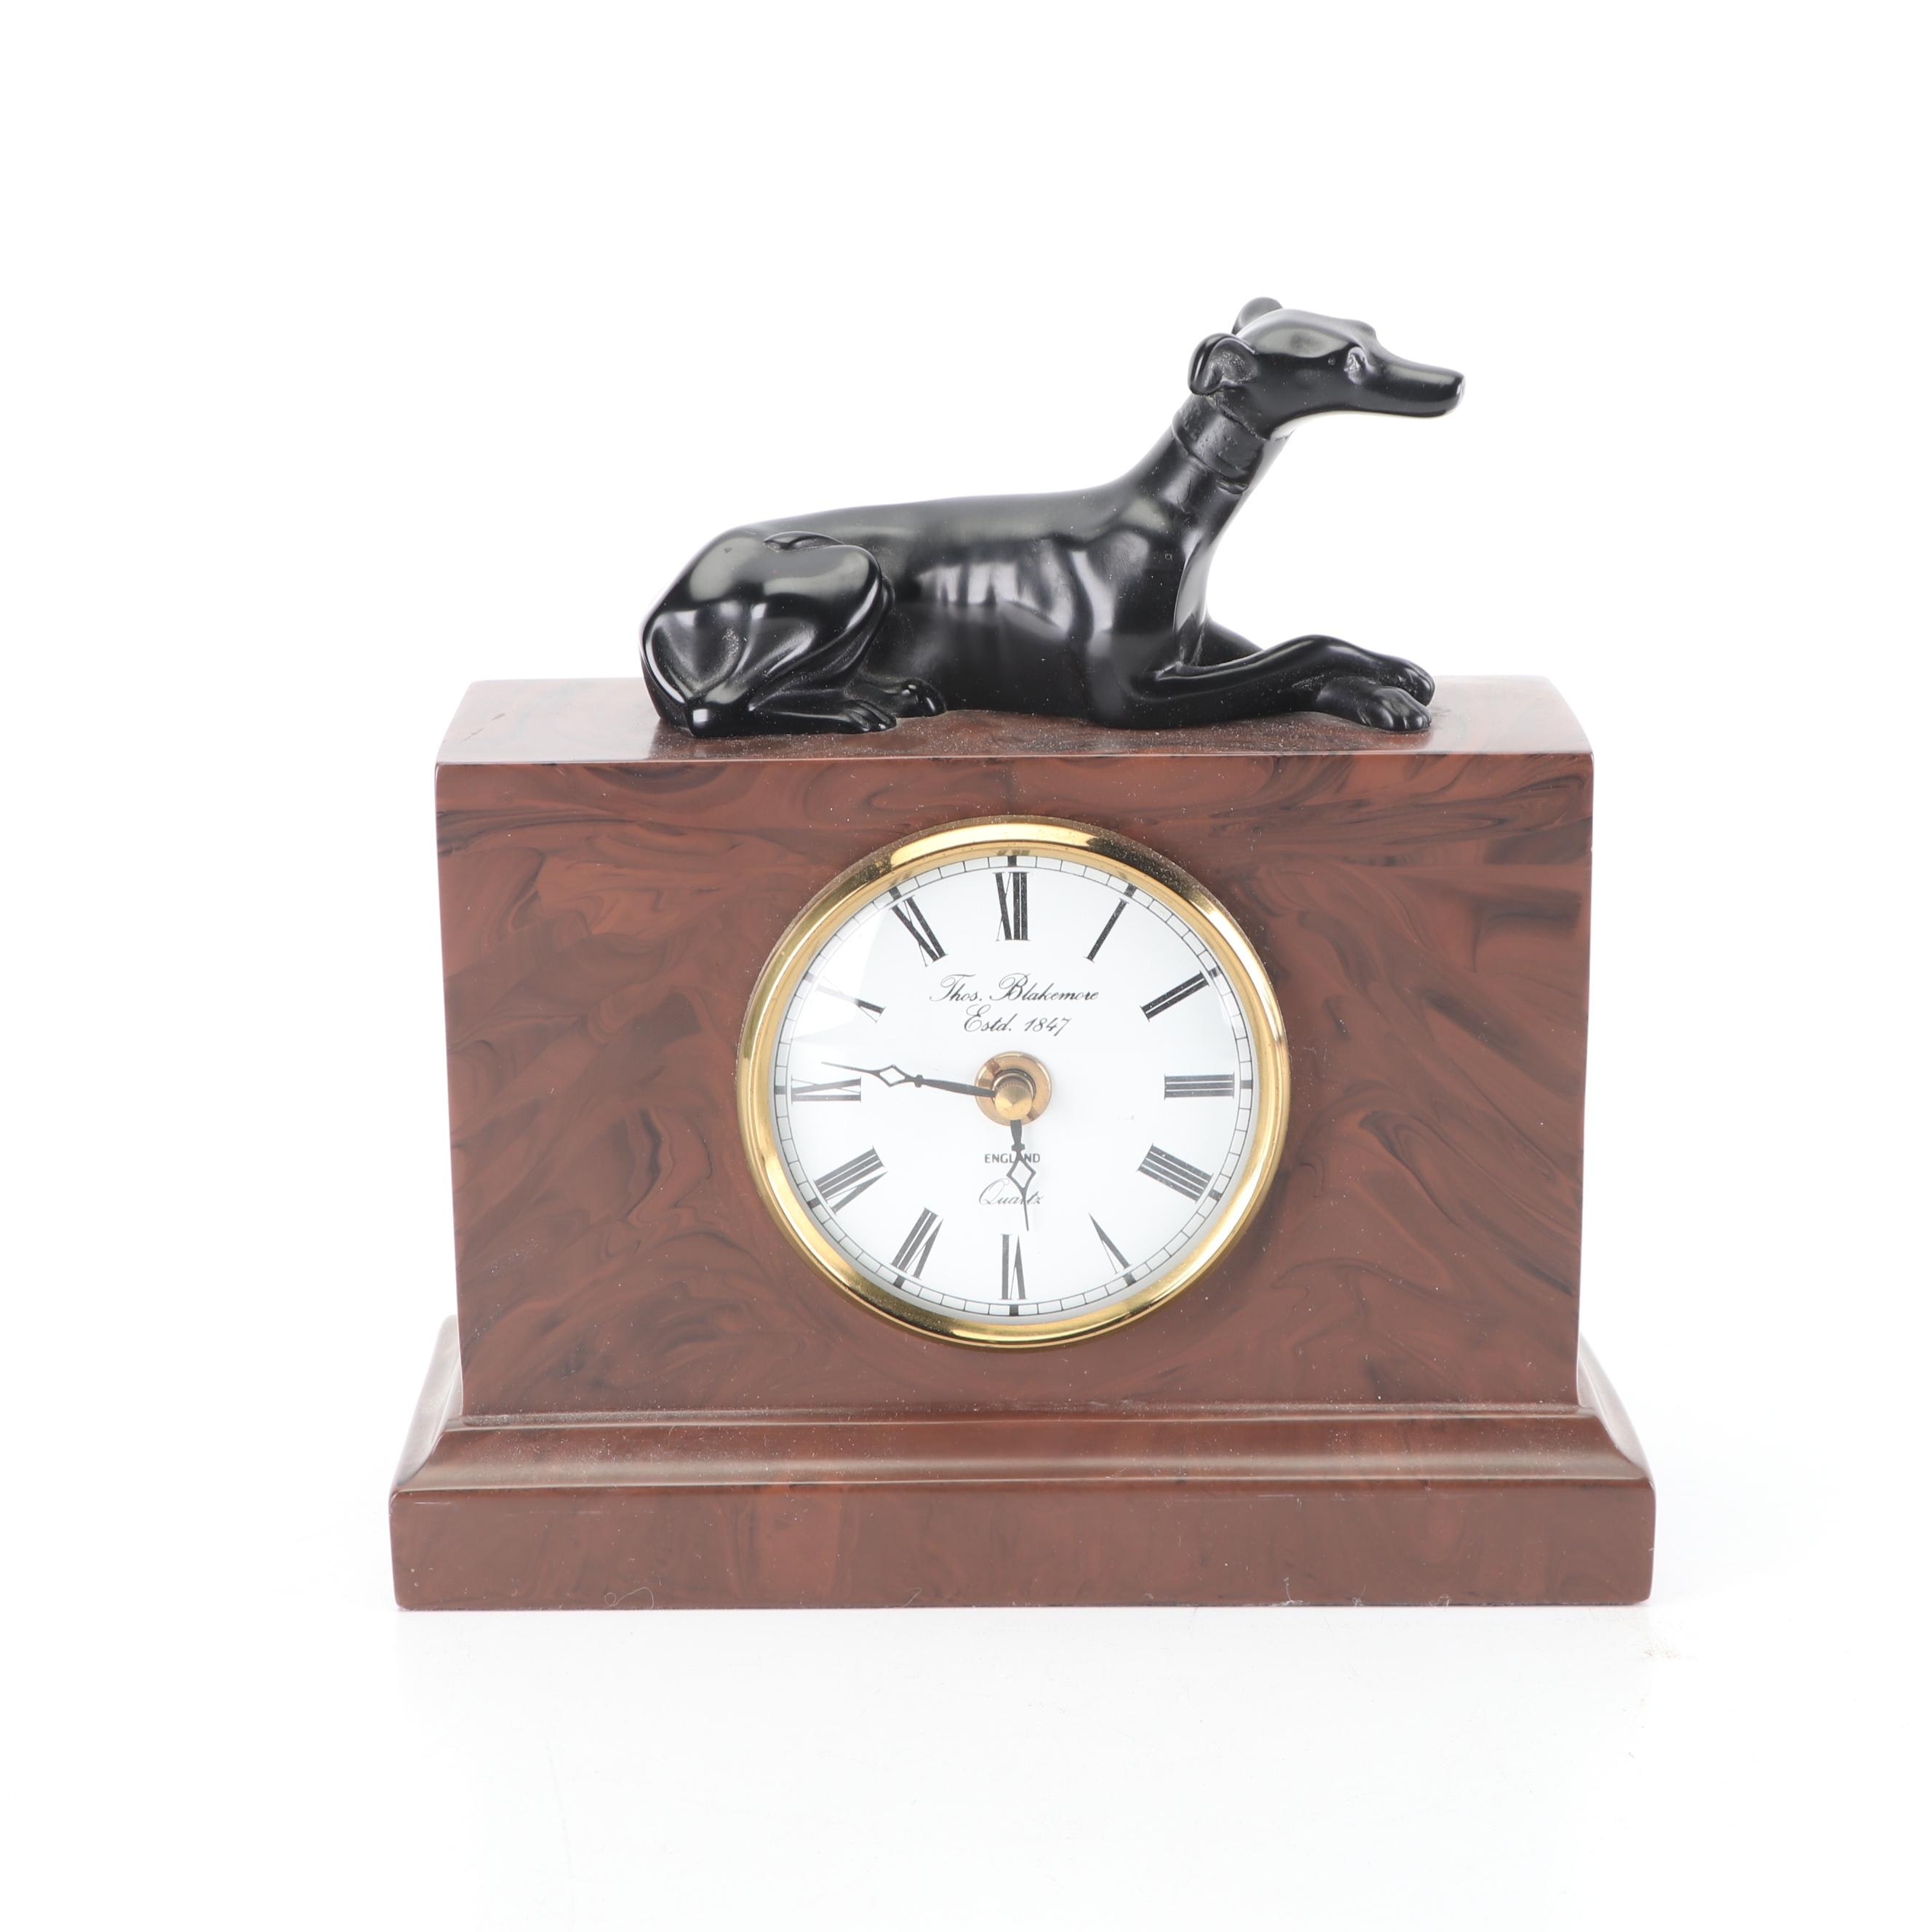 Thomas Blakemore English Mantel Clock with Figural Greyhound